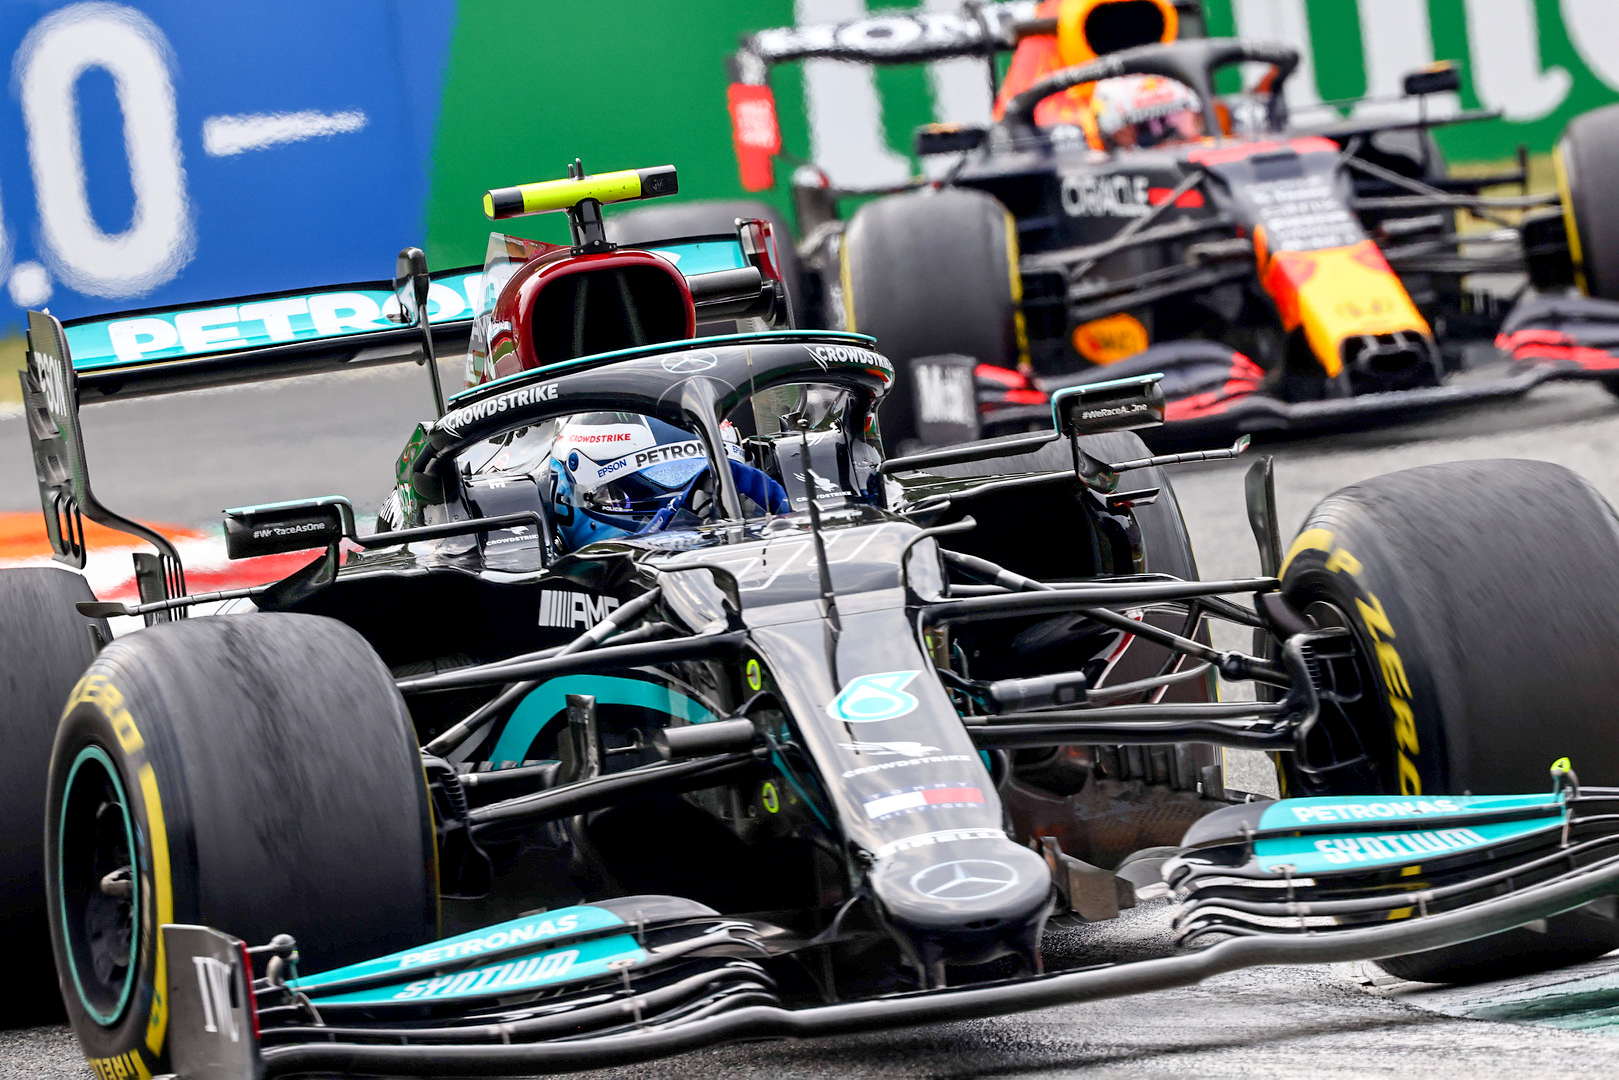 The Mercedes-AMG Petronas F1 Team will start tomorrow's Sprint Race on the front row after a strong Friday qualifying session at the Italian Grand Prix